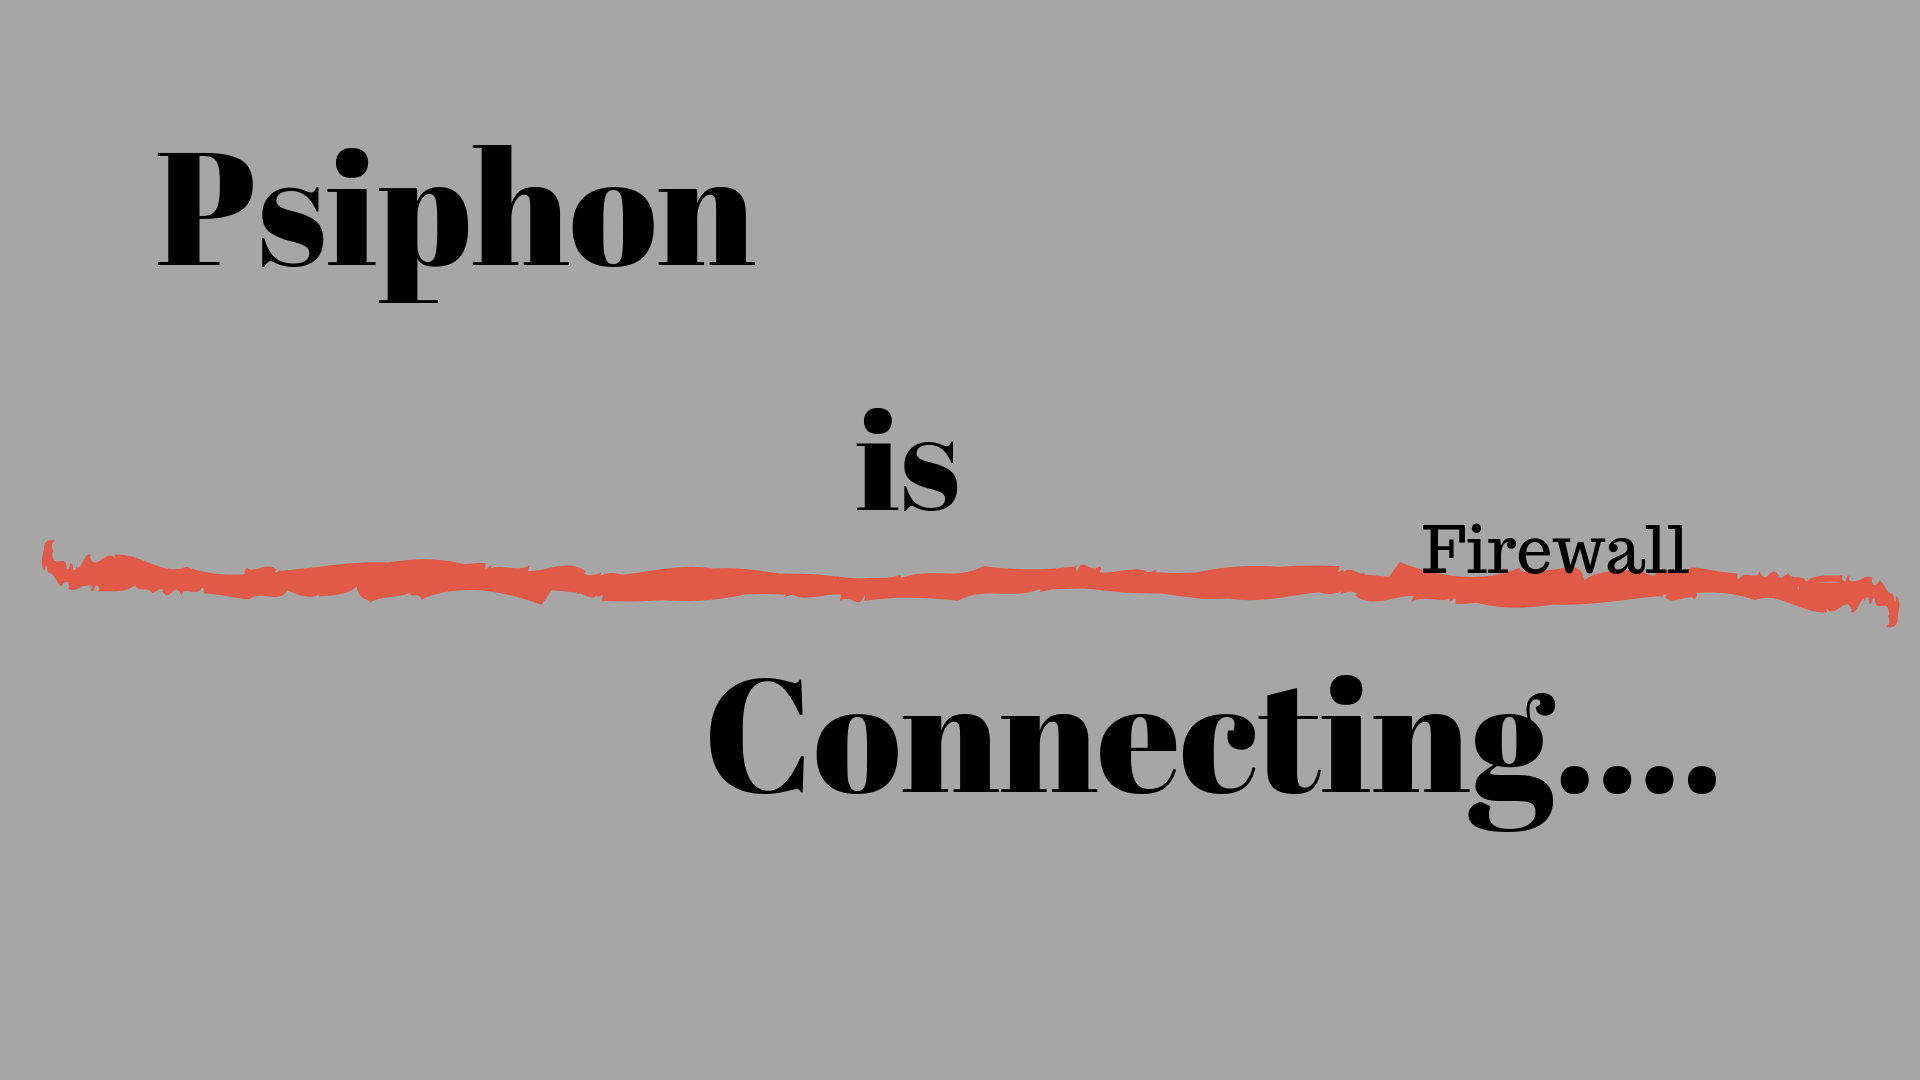 Download Psiphon Free for Windows 10, 7, 8/8.1